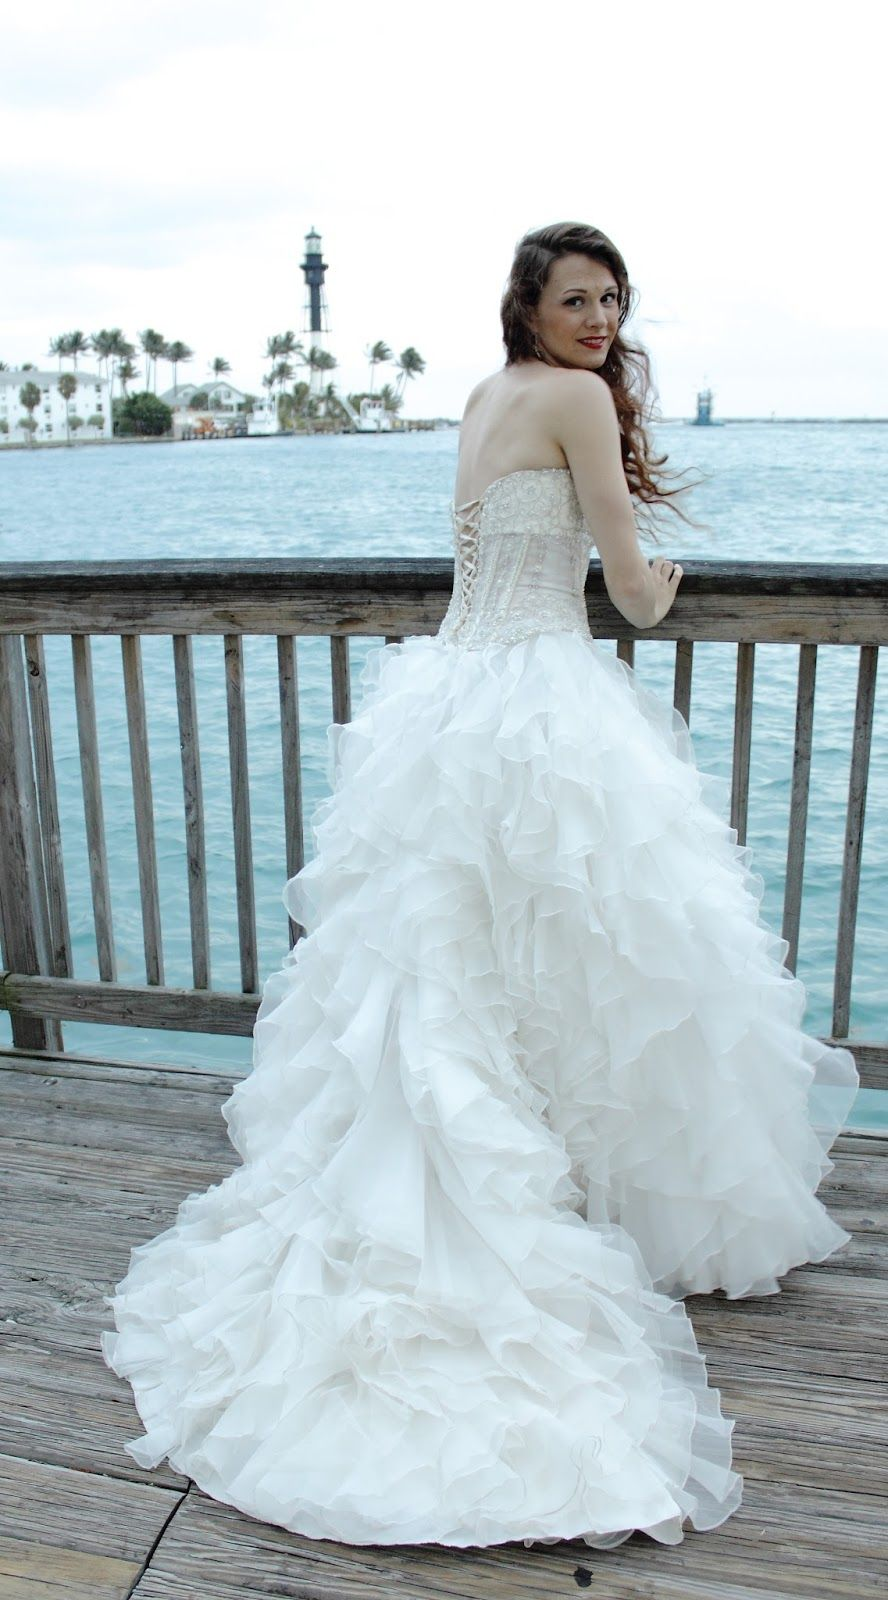 Famous Bella Swan Wedding Gown Image - All Wedding Dresses ...